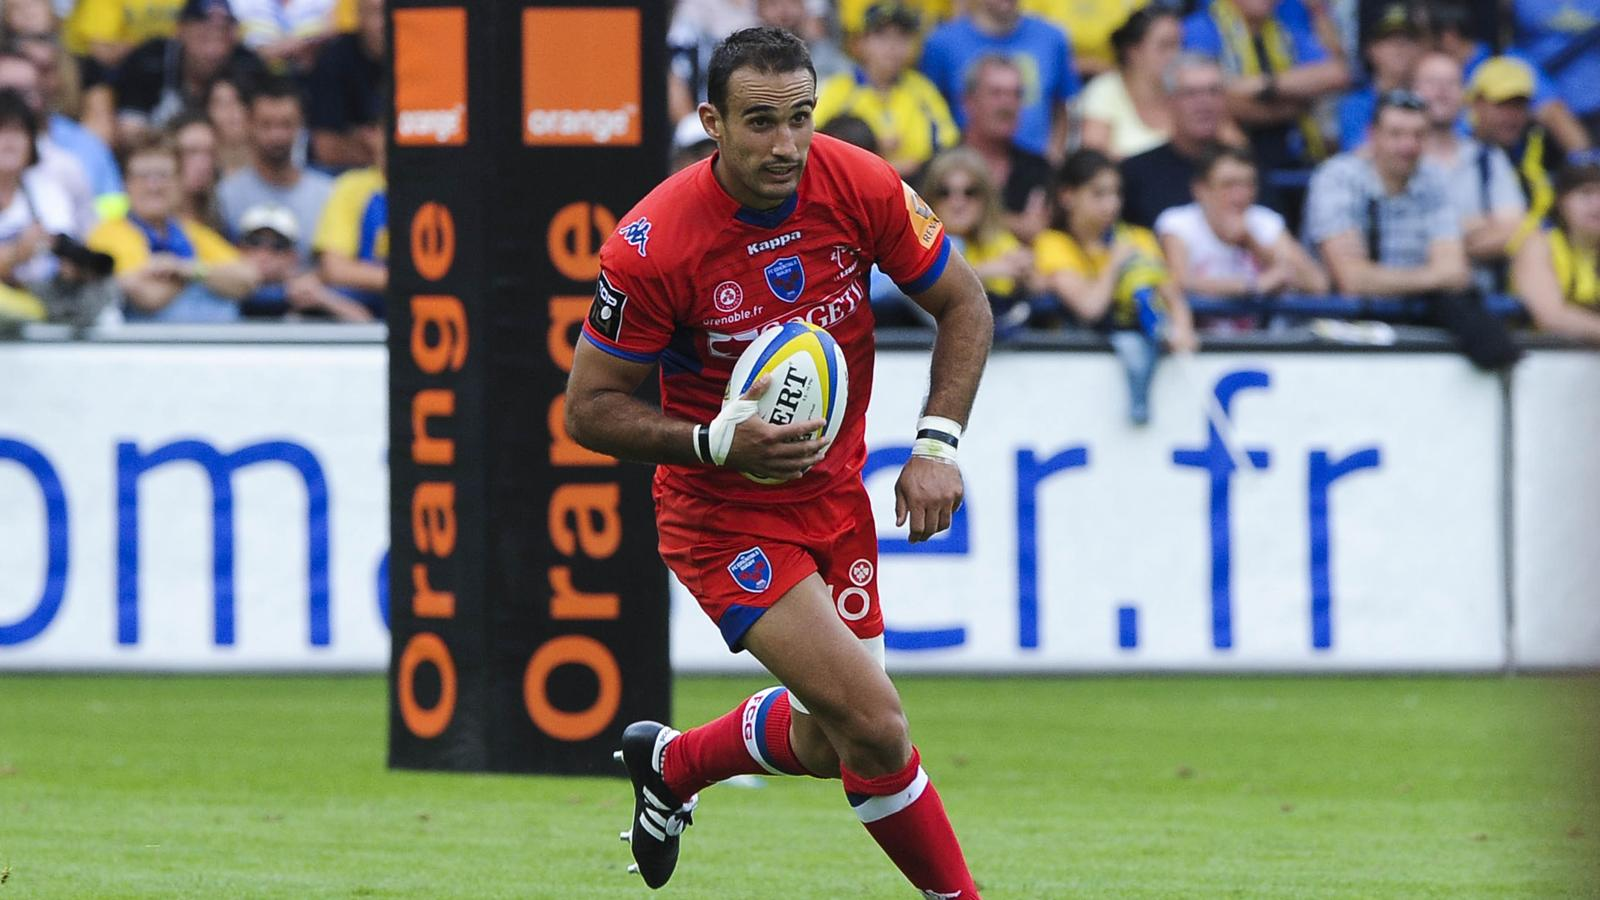 Rugby Top 14: FC Grenoble vs Lyon LOU en direct live streaming